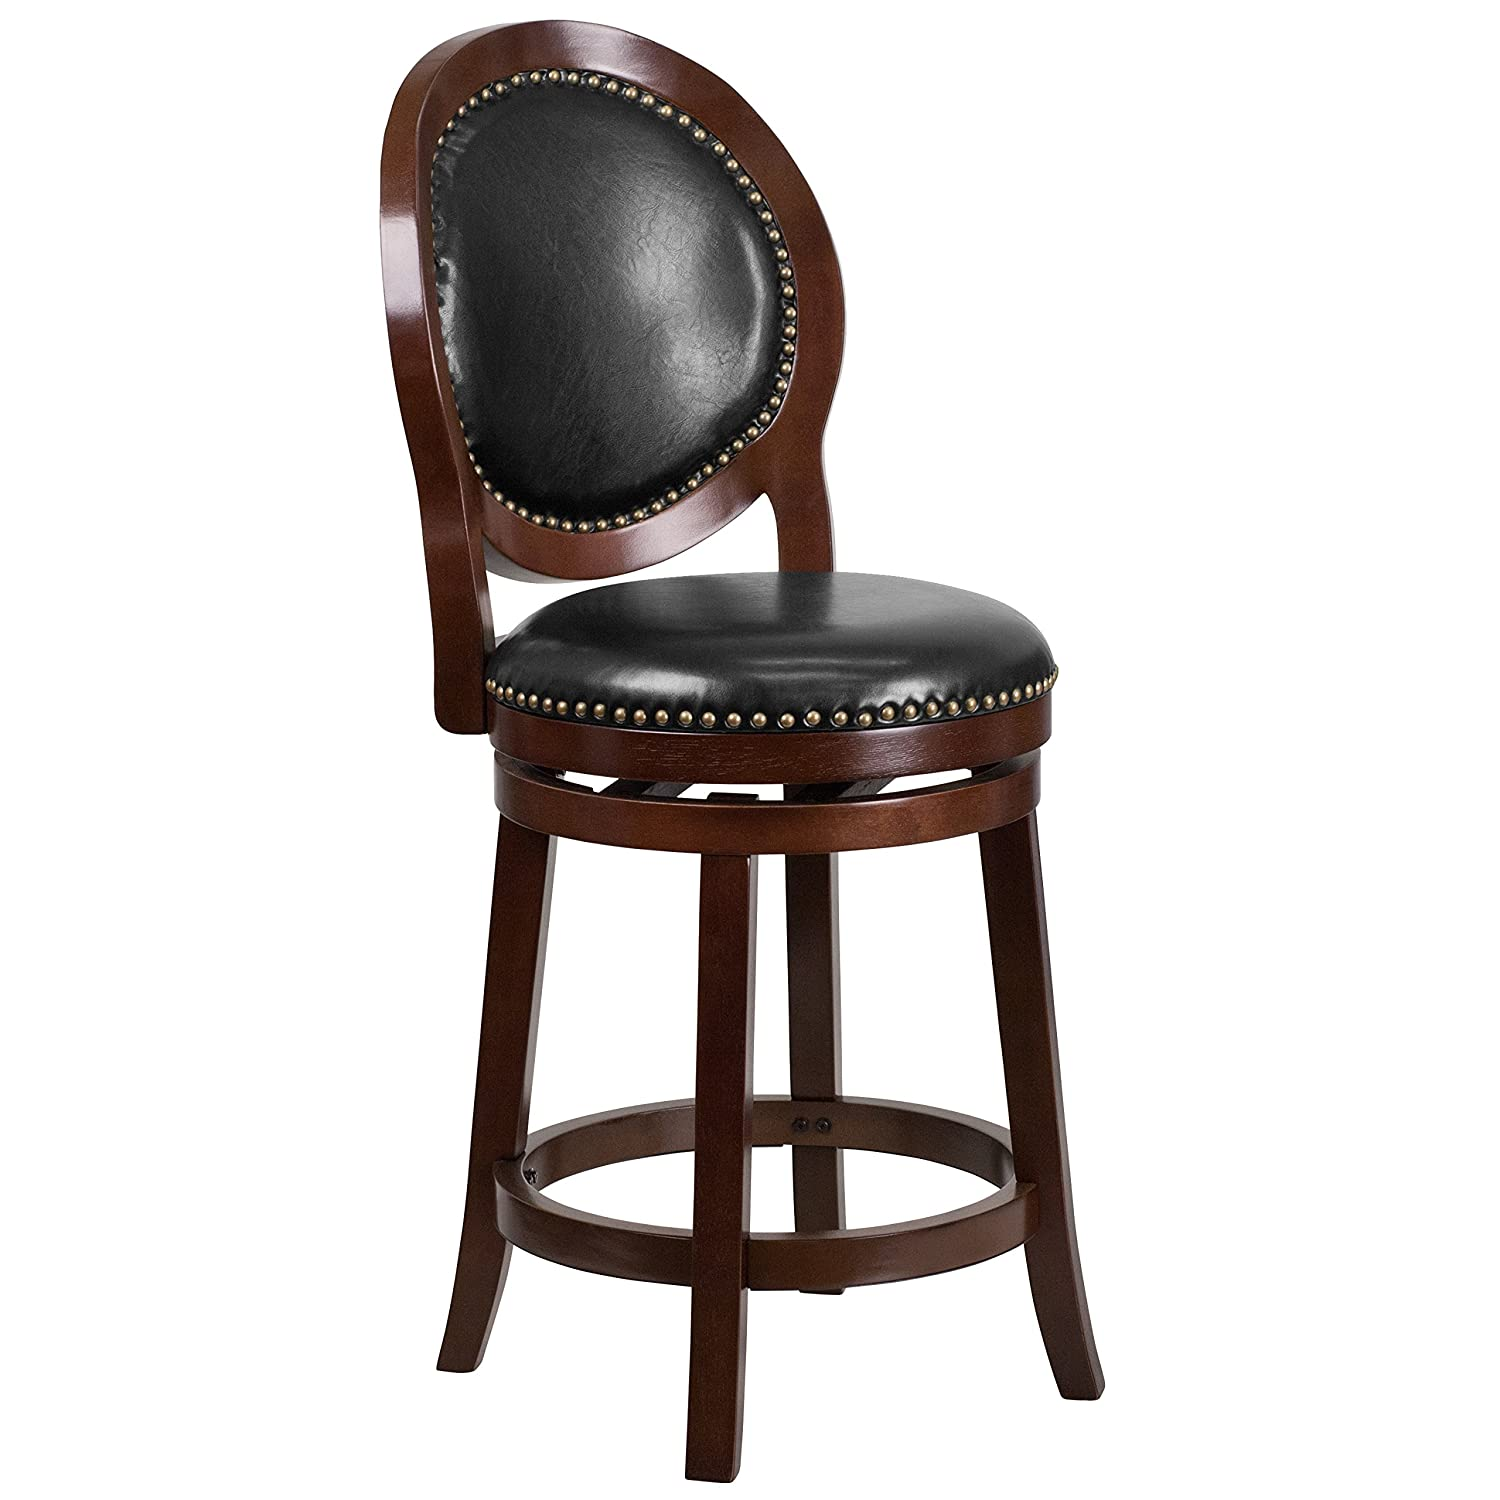 Flash Furniture 26'' High Cappuccino Counter Height Wood Stool with Oval Back and Black Leather Swivel Seat